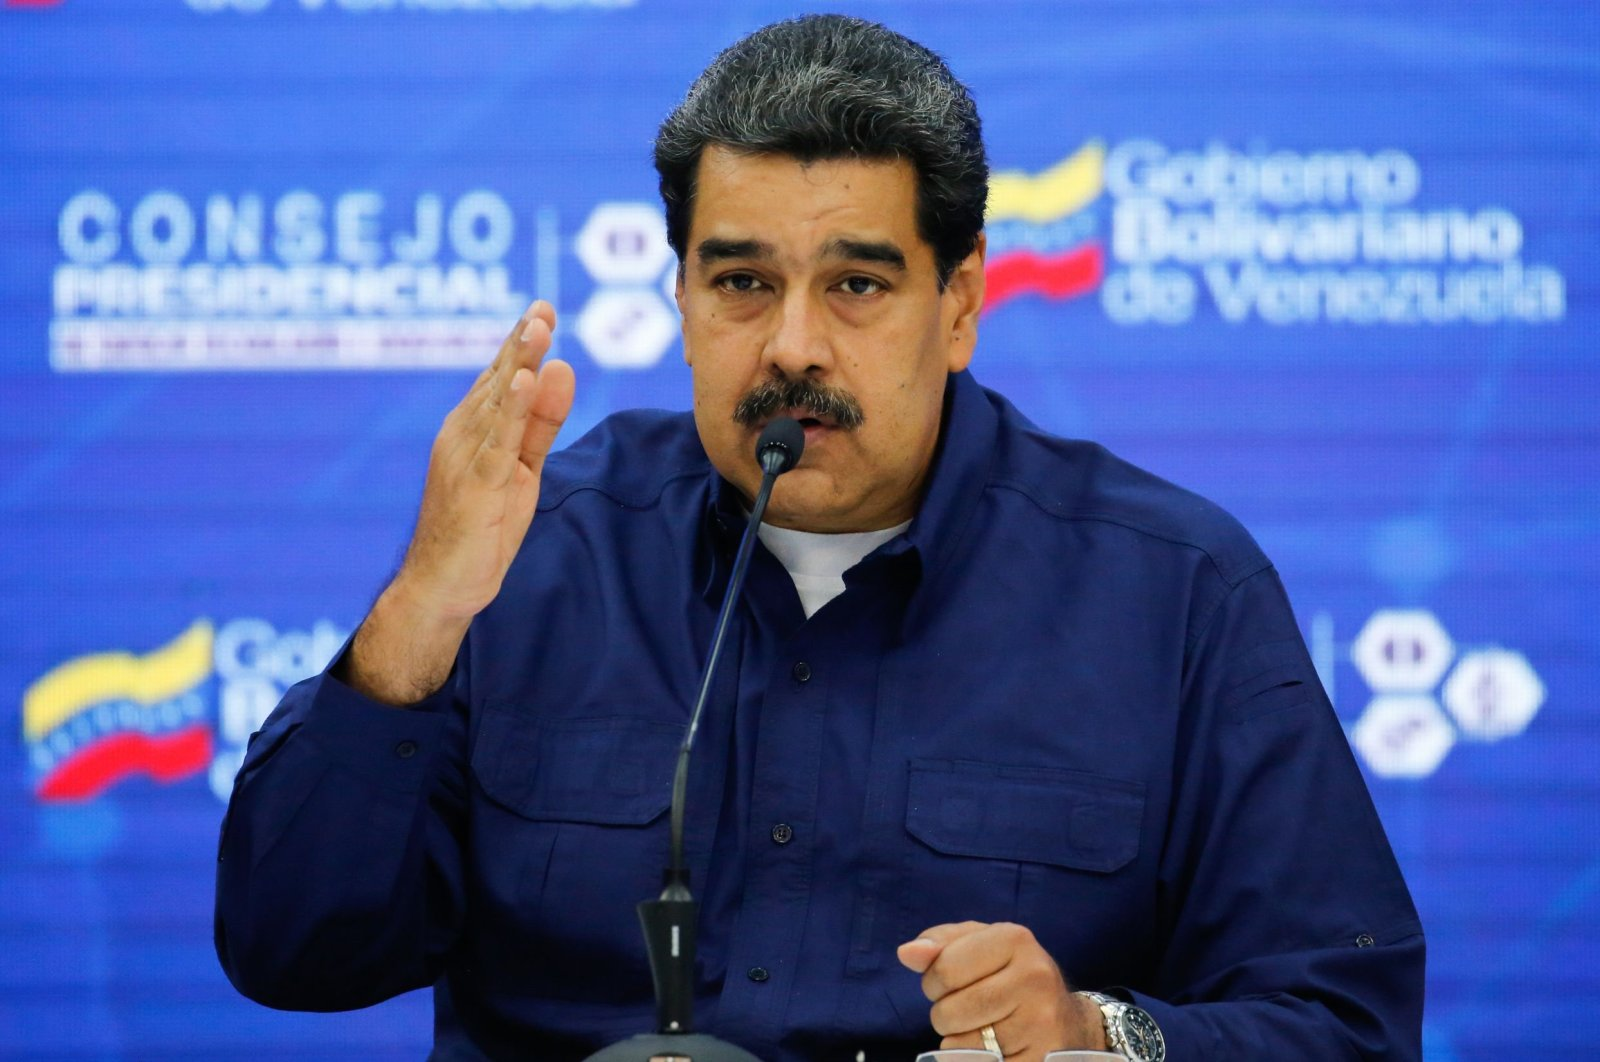 A handout picture released by the Venezuelan presidency showing Venezuelan President Nicolas Maduro talking during a meeting with ministers in Caracas on February 18, 2019